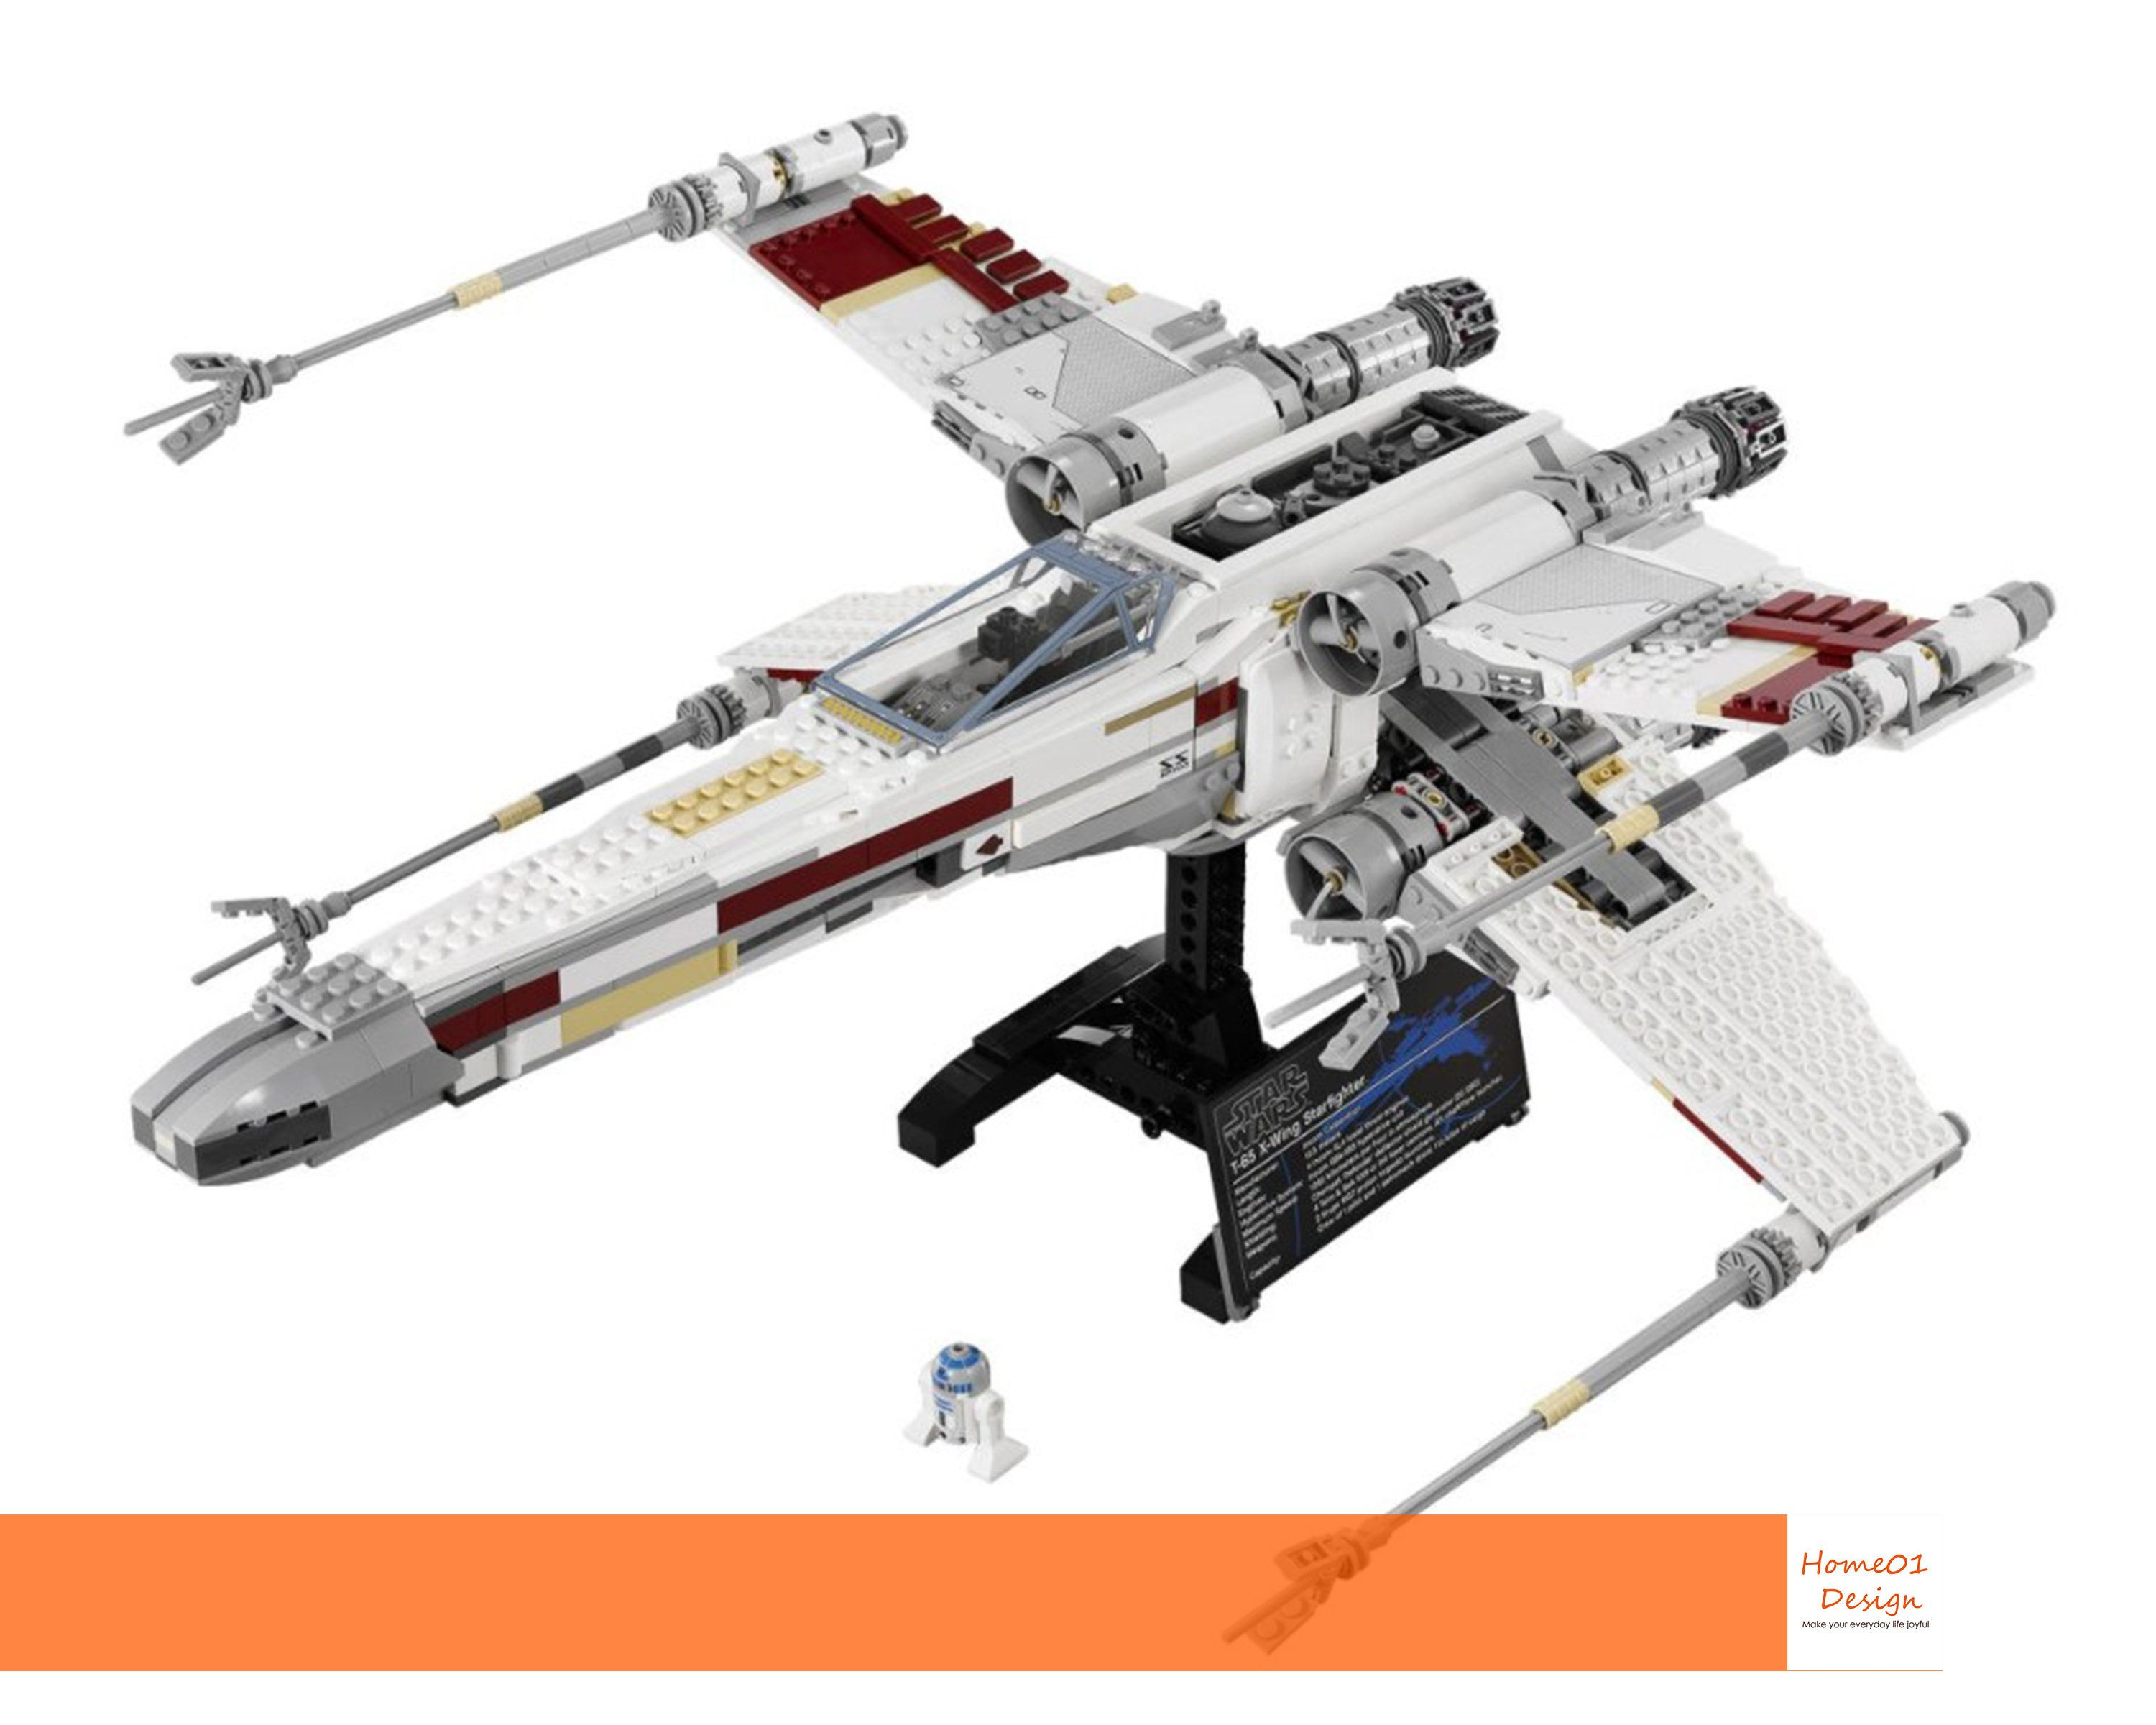 Red Five X Wing Starfighter 10240 Moc Brick Set Star Wars Compatible With Lego Boys Christmas Gifts Diy Diy Educational Toys Christmas Gifts For Boys